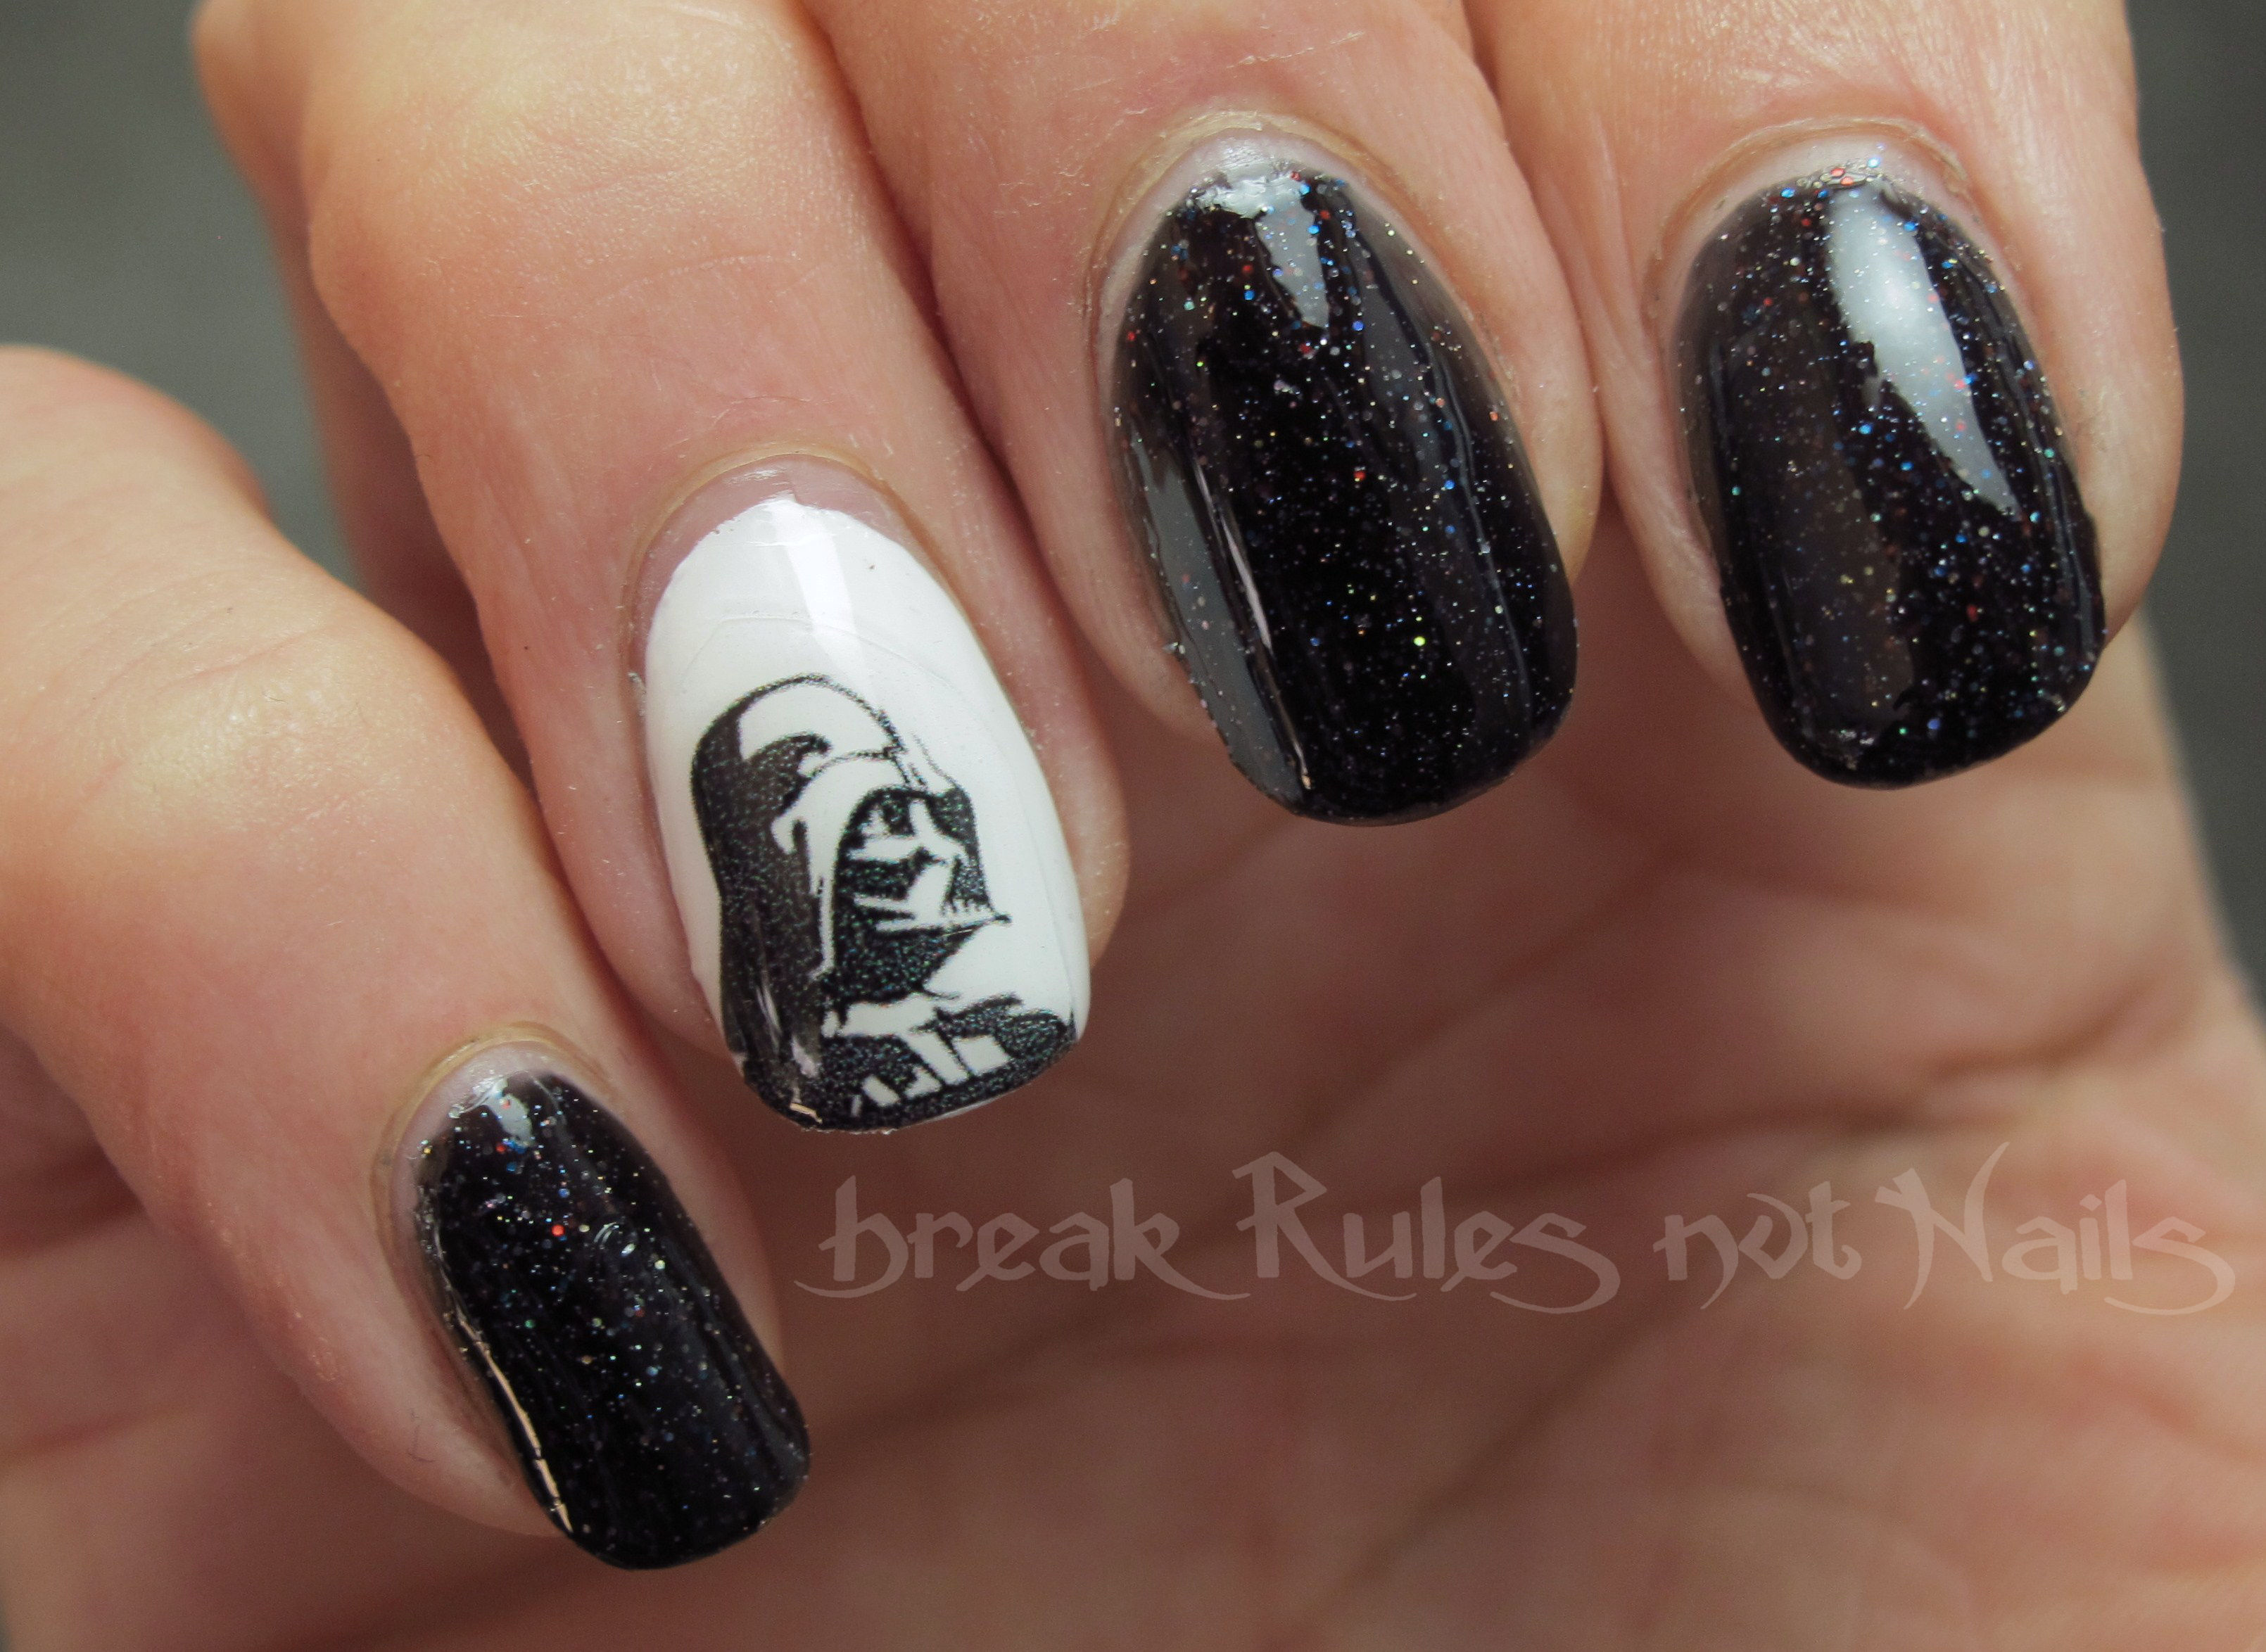 Darth Vader nail art | Break rules, not nails